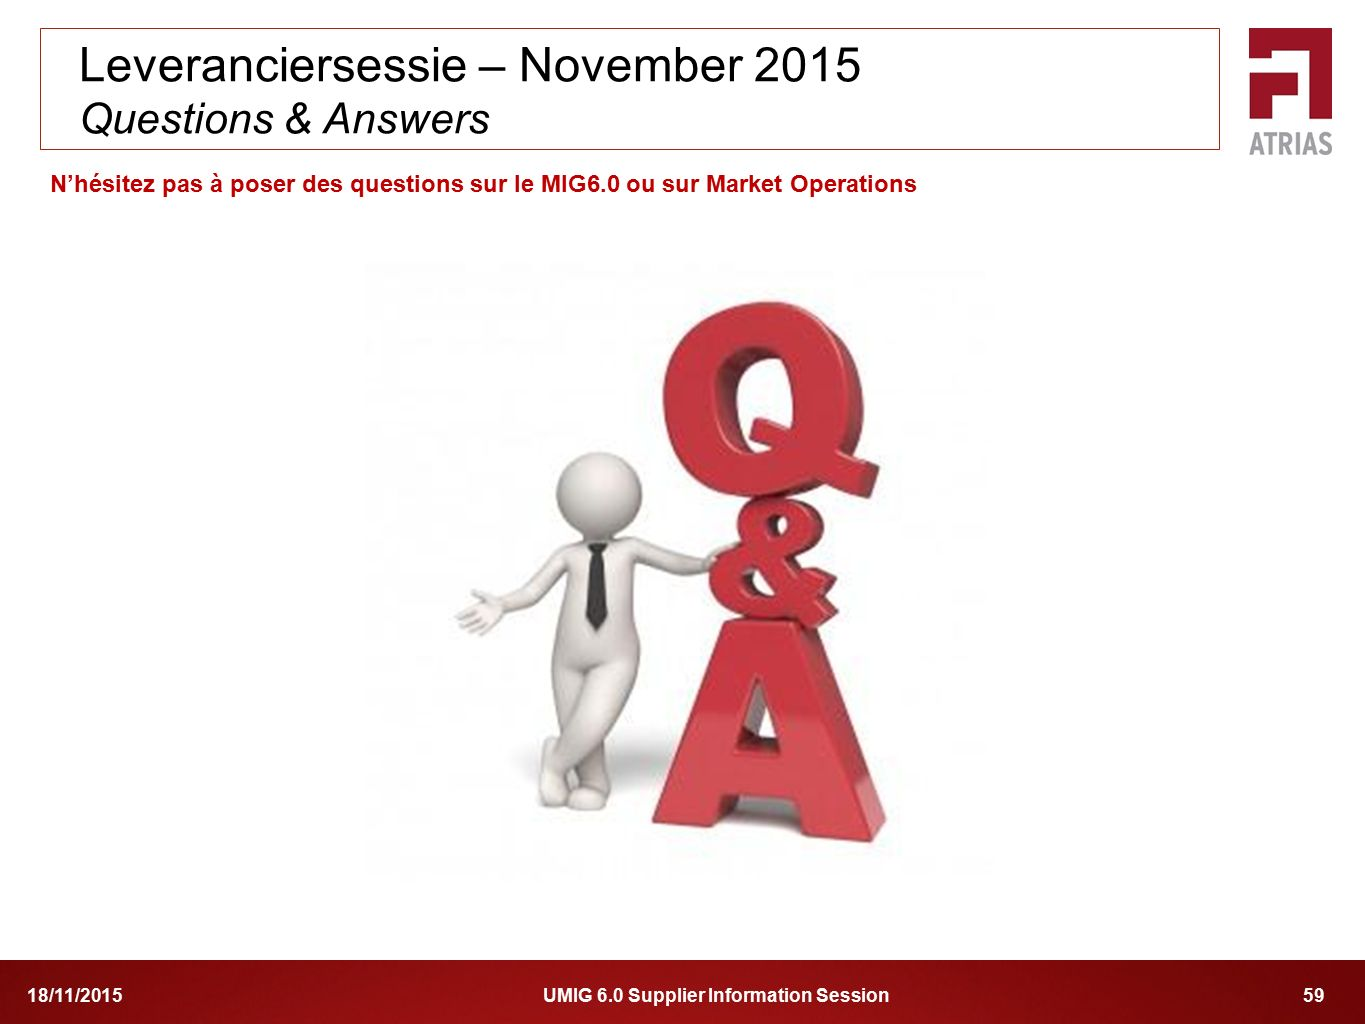 Leveranciersessie – November 2015 Questions & Answers